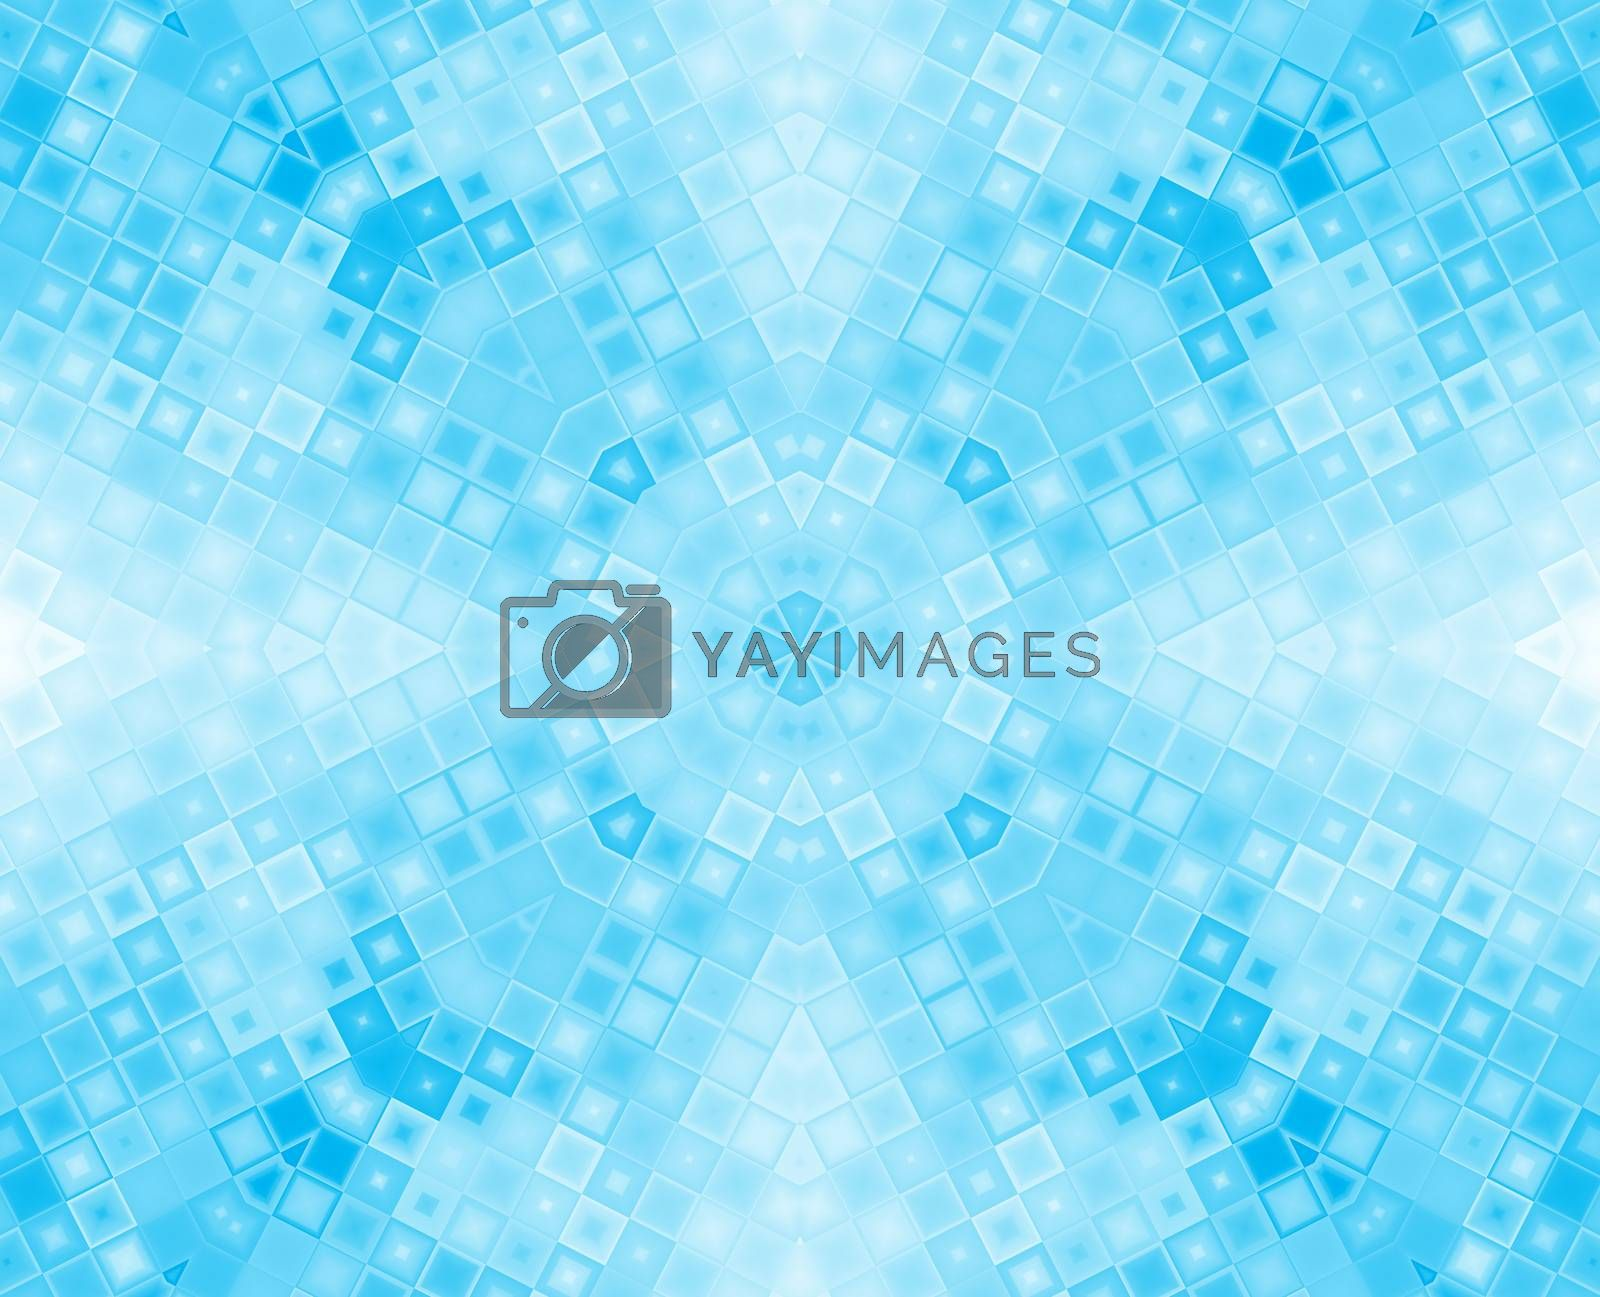 Abstract blue concentric pattern of different squares